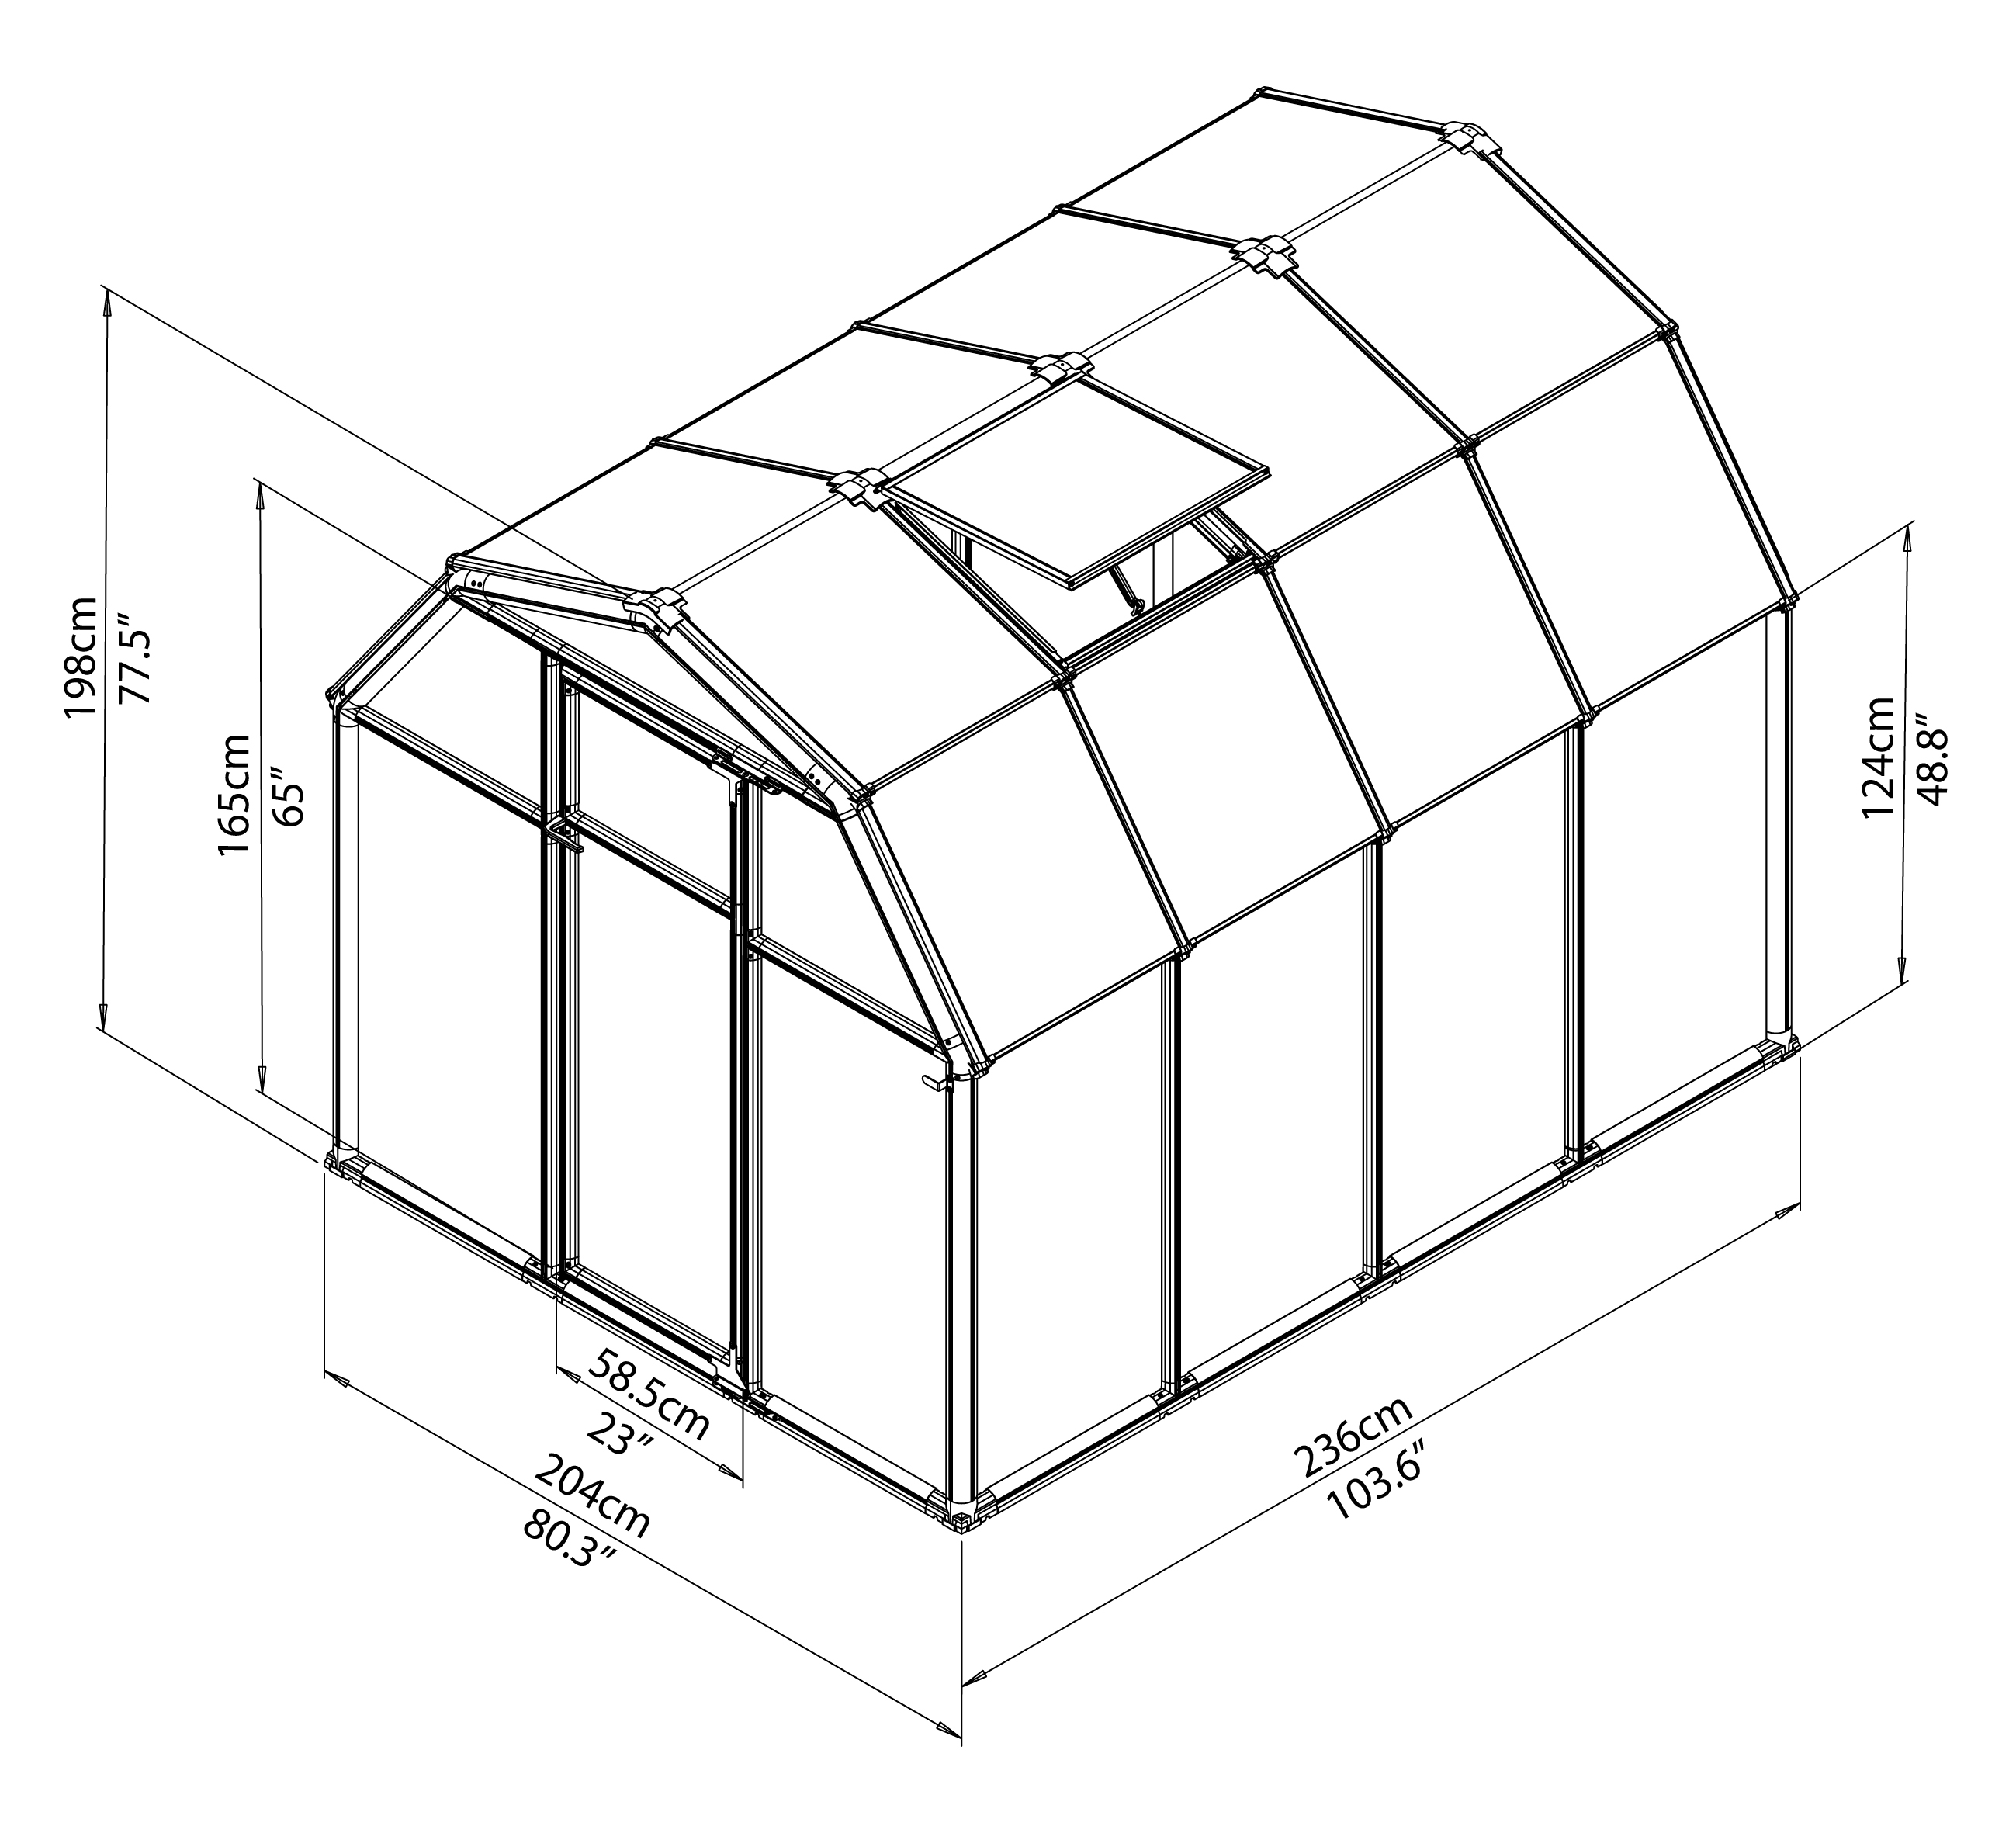 rion-greenhouses-eco-grow-6x8-drawing-isoview.jpg